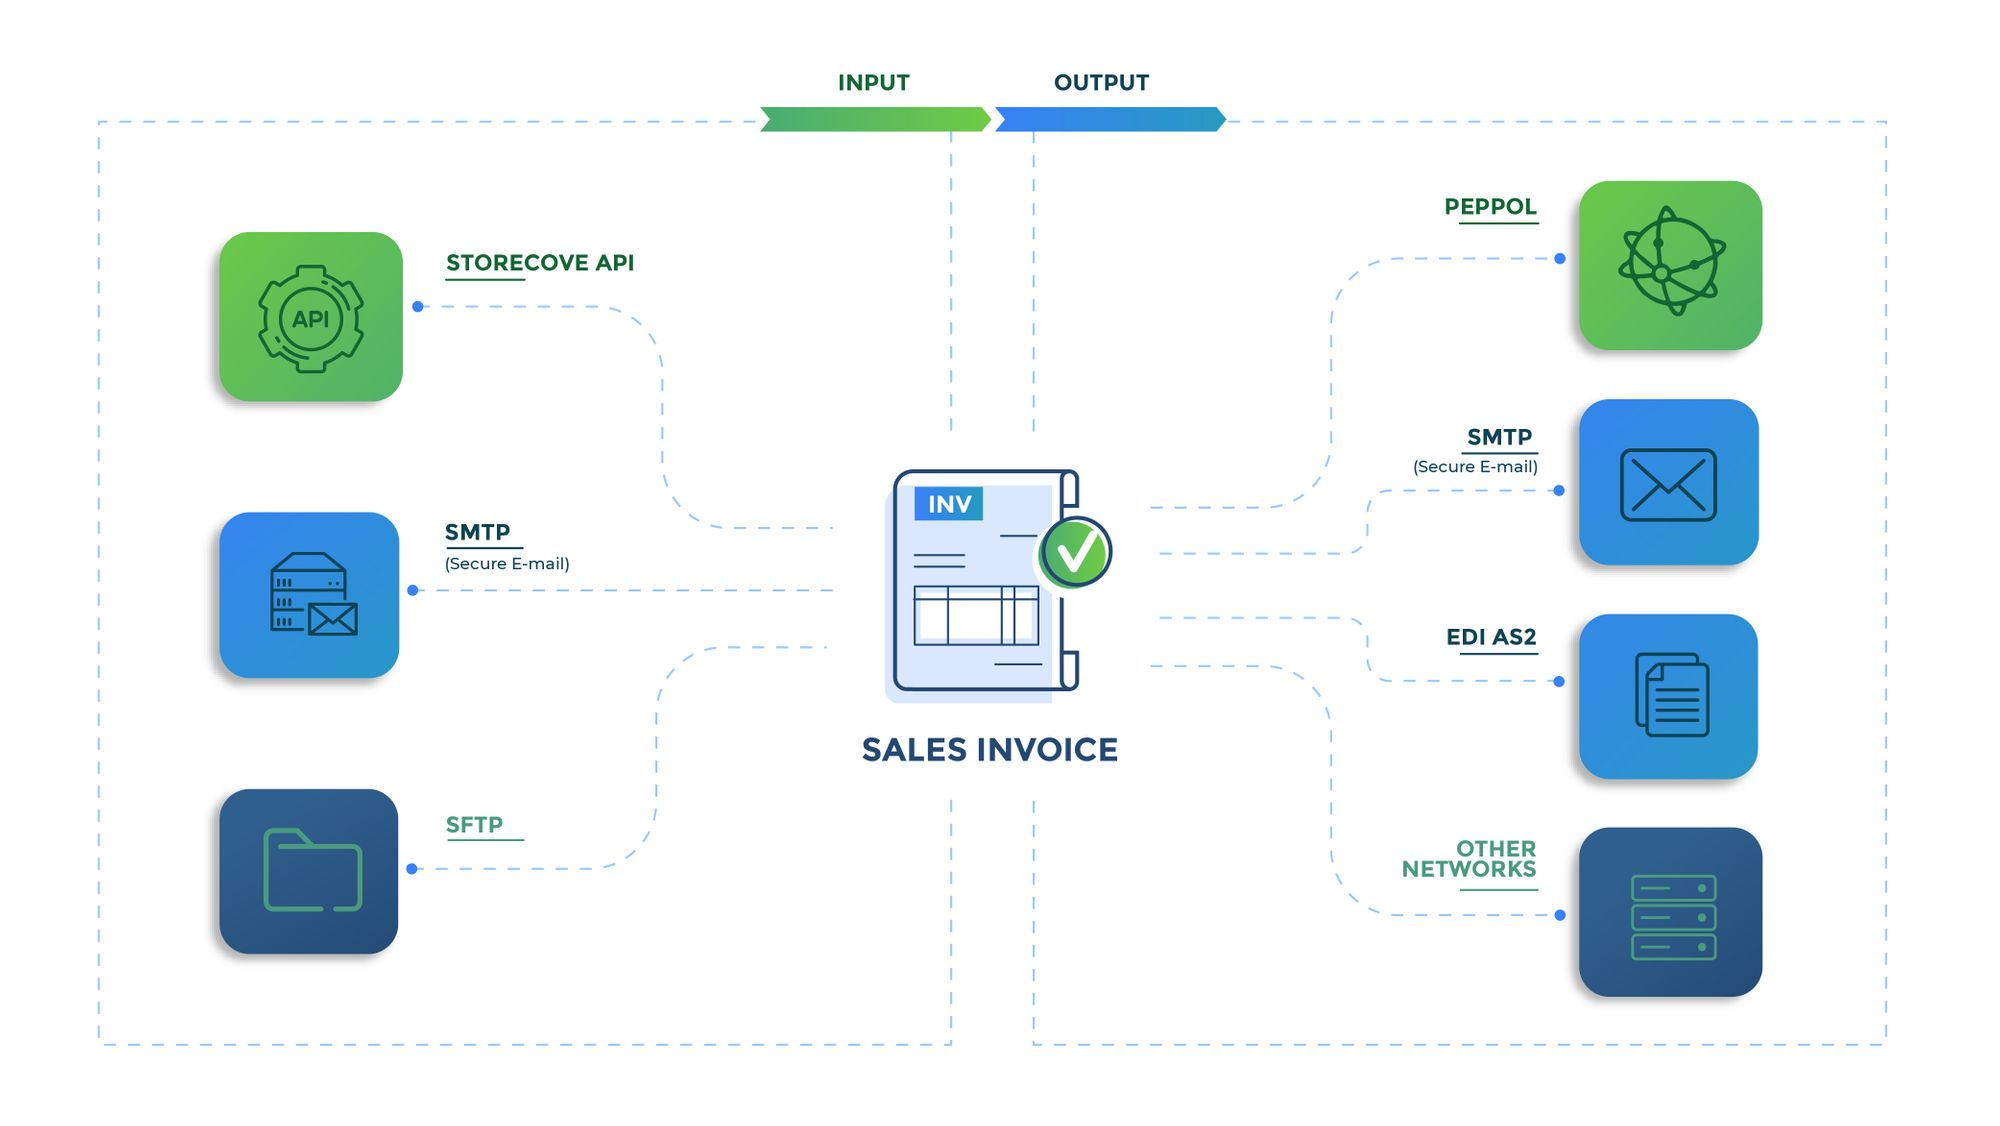 International e-invoicing sales invoices with Storecove